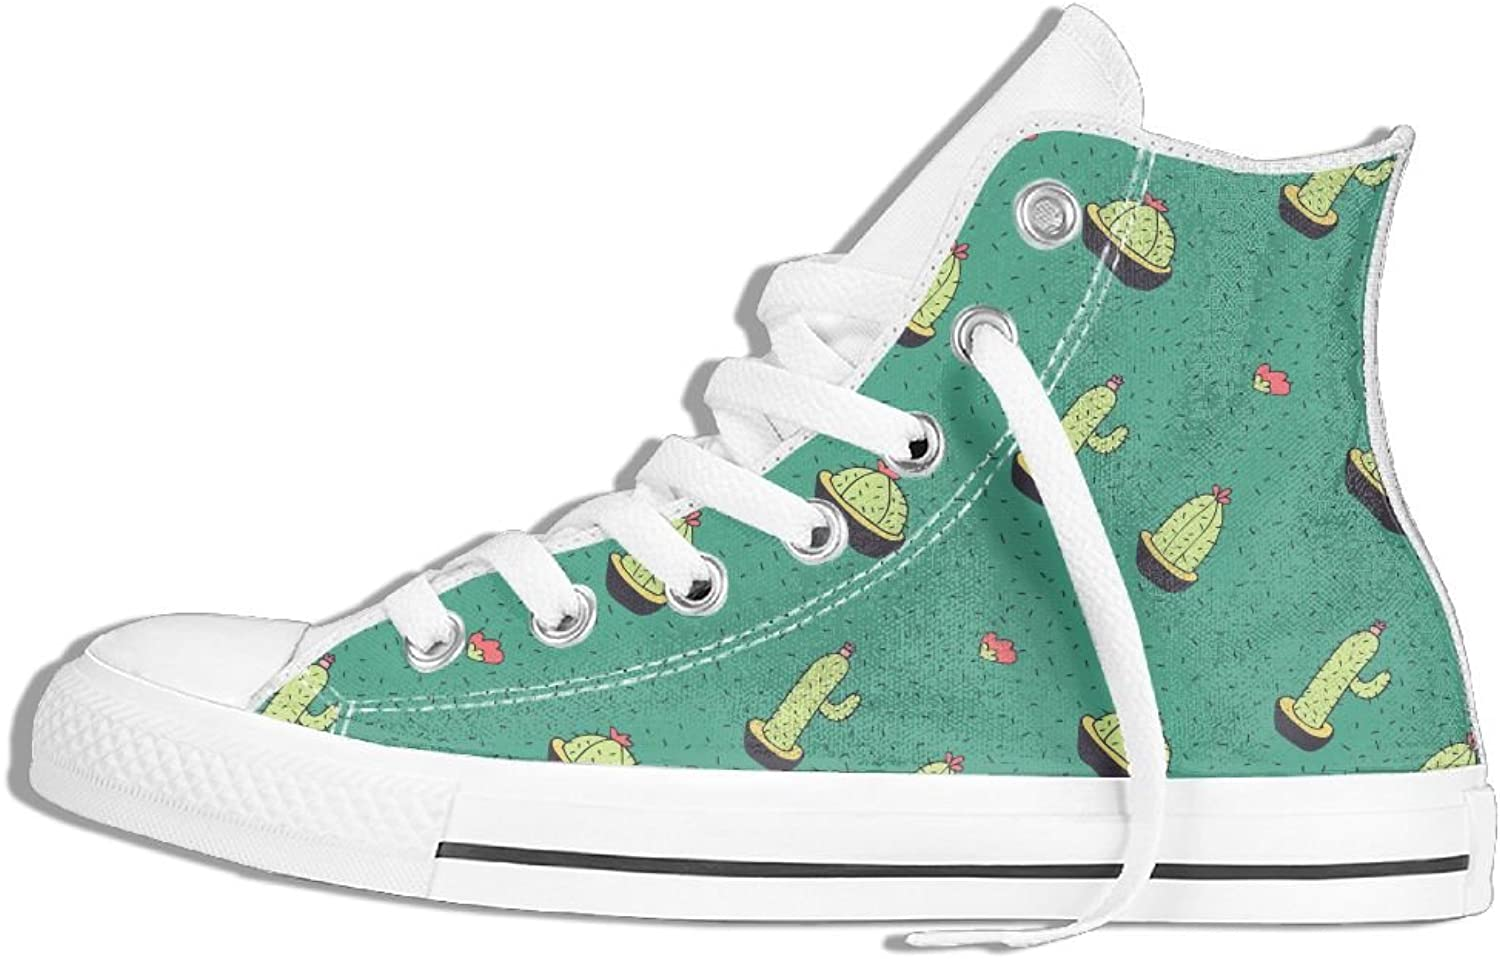 Unisex High-Top Canvas Sneakers Cartoon Cactus Flat Anti-slip Sports Trainers shoes